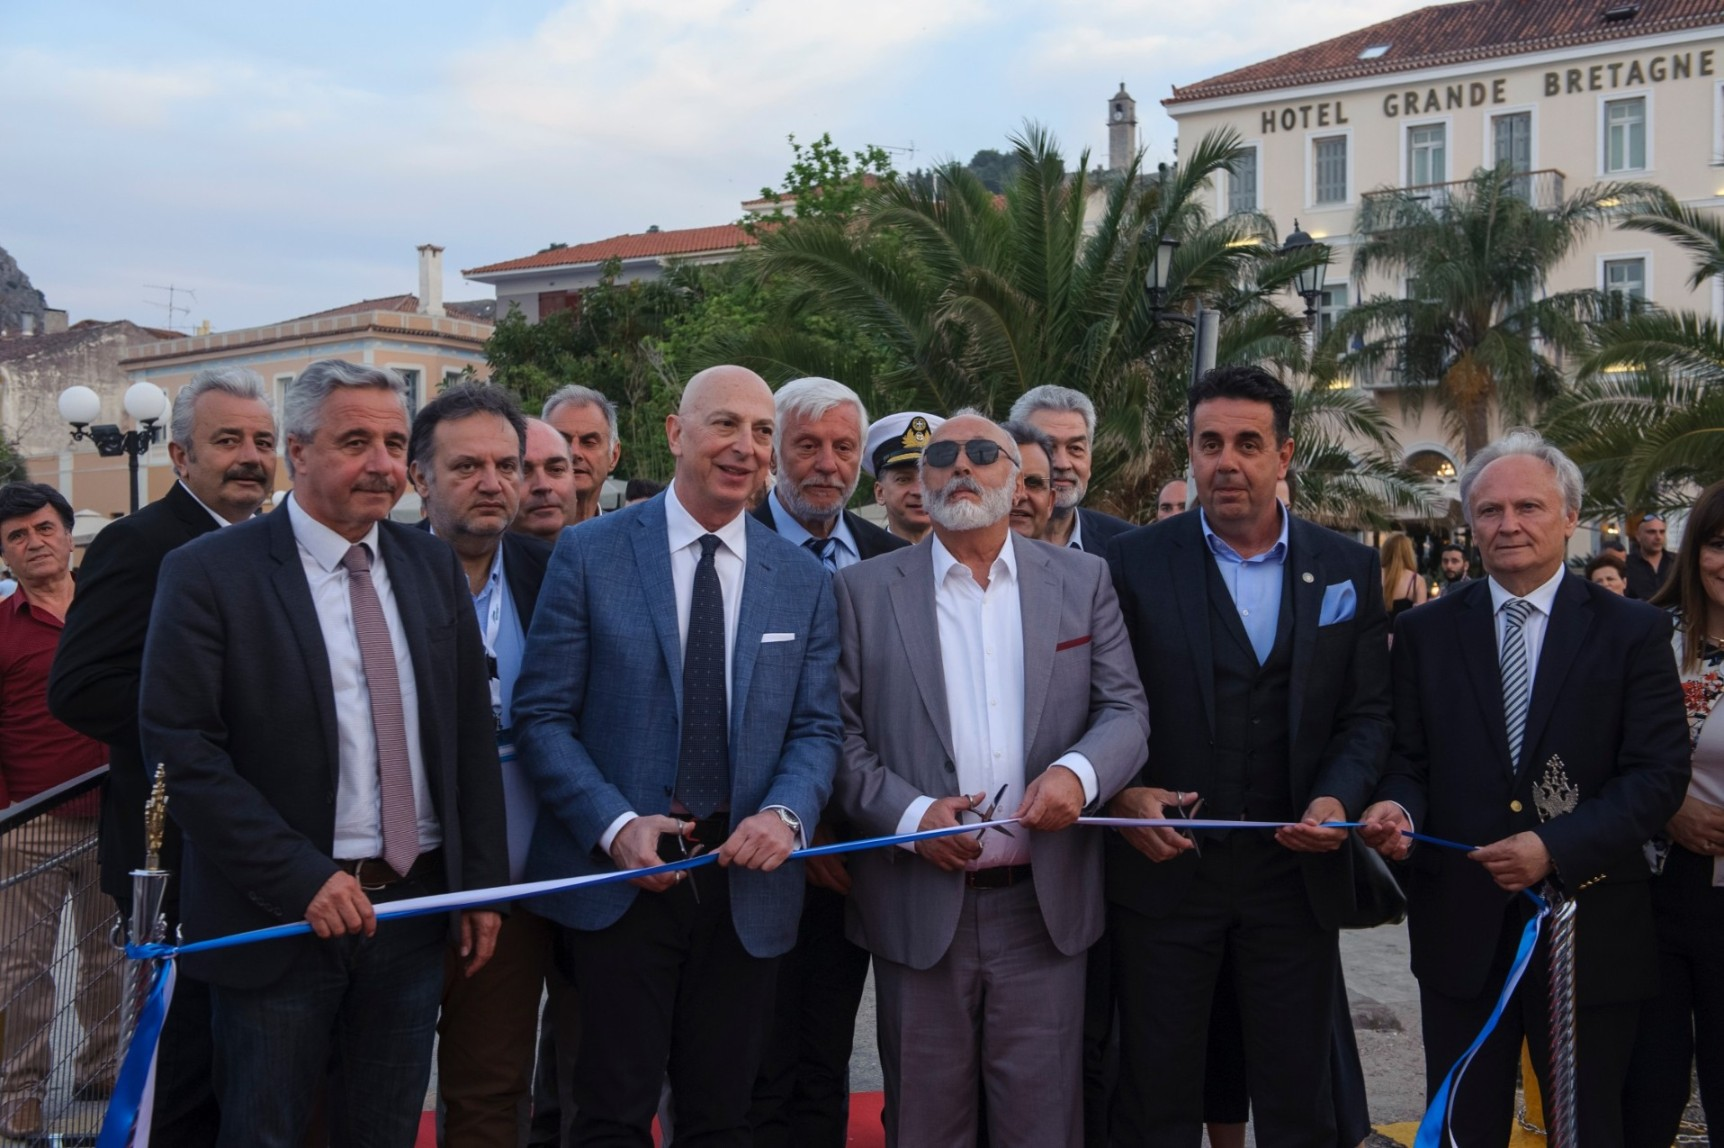 (from left to right) Mr Giannis Maniatis, Member of Parliament for Argolida, Mr Michael Skoulikidis, President of the Greek Yachting Association (GYA), Mr Petros Tatoulis, Regional Governor of the Peloponnese, Mr Panagiotis Kouroumplis, Minister for Maritime Affairs and Insular Policy, Mr Dimitris Kostouros, Mayor of Nafplion, Mr Ioannis Andrianos, Member of Parliament for Argolida, cutting the ribbon during the opening ceremony.